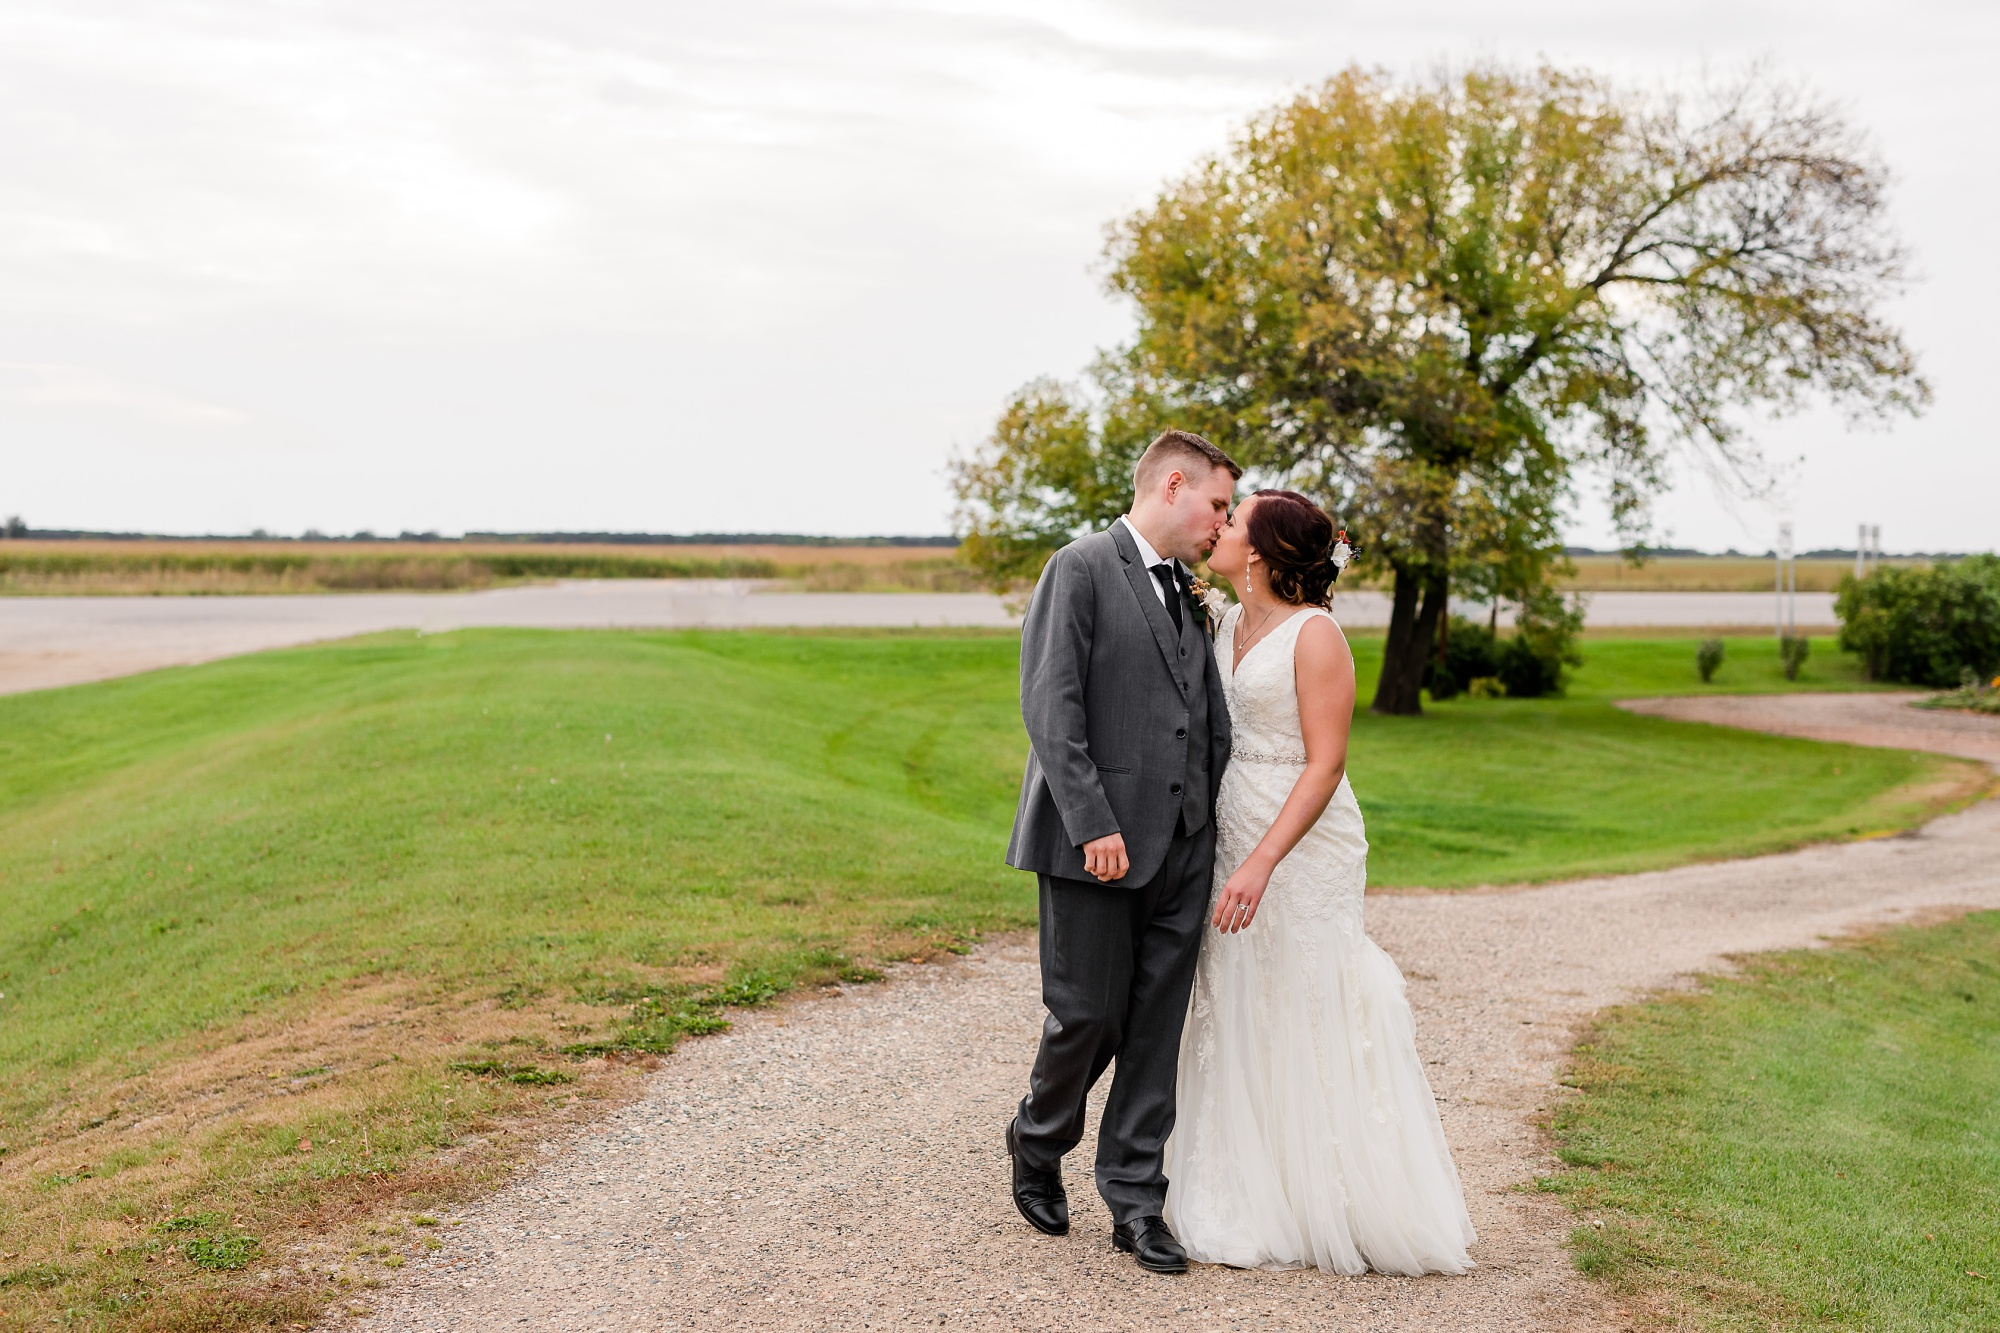 Amber Langerud Photography_Moohread, Outdoor, Barn Wedding at A Friends House_7130.jpg